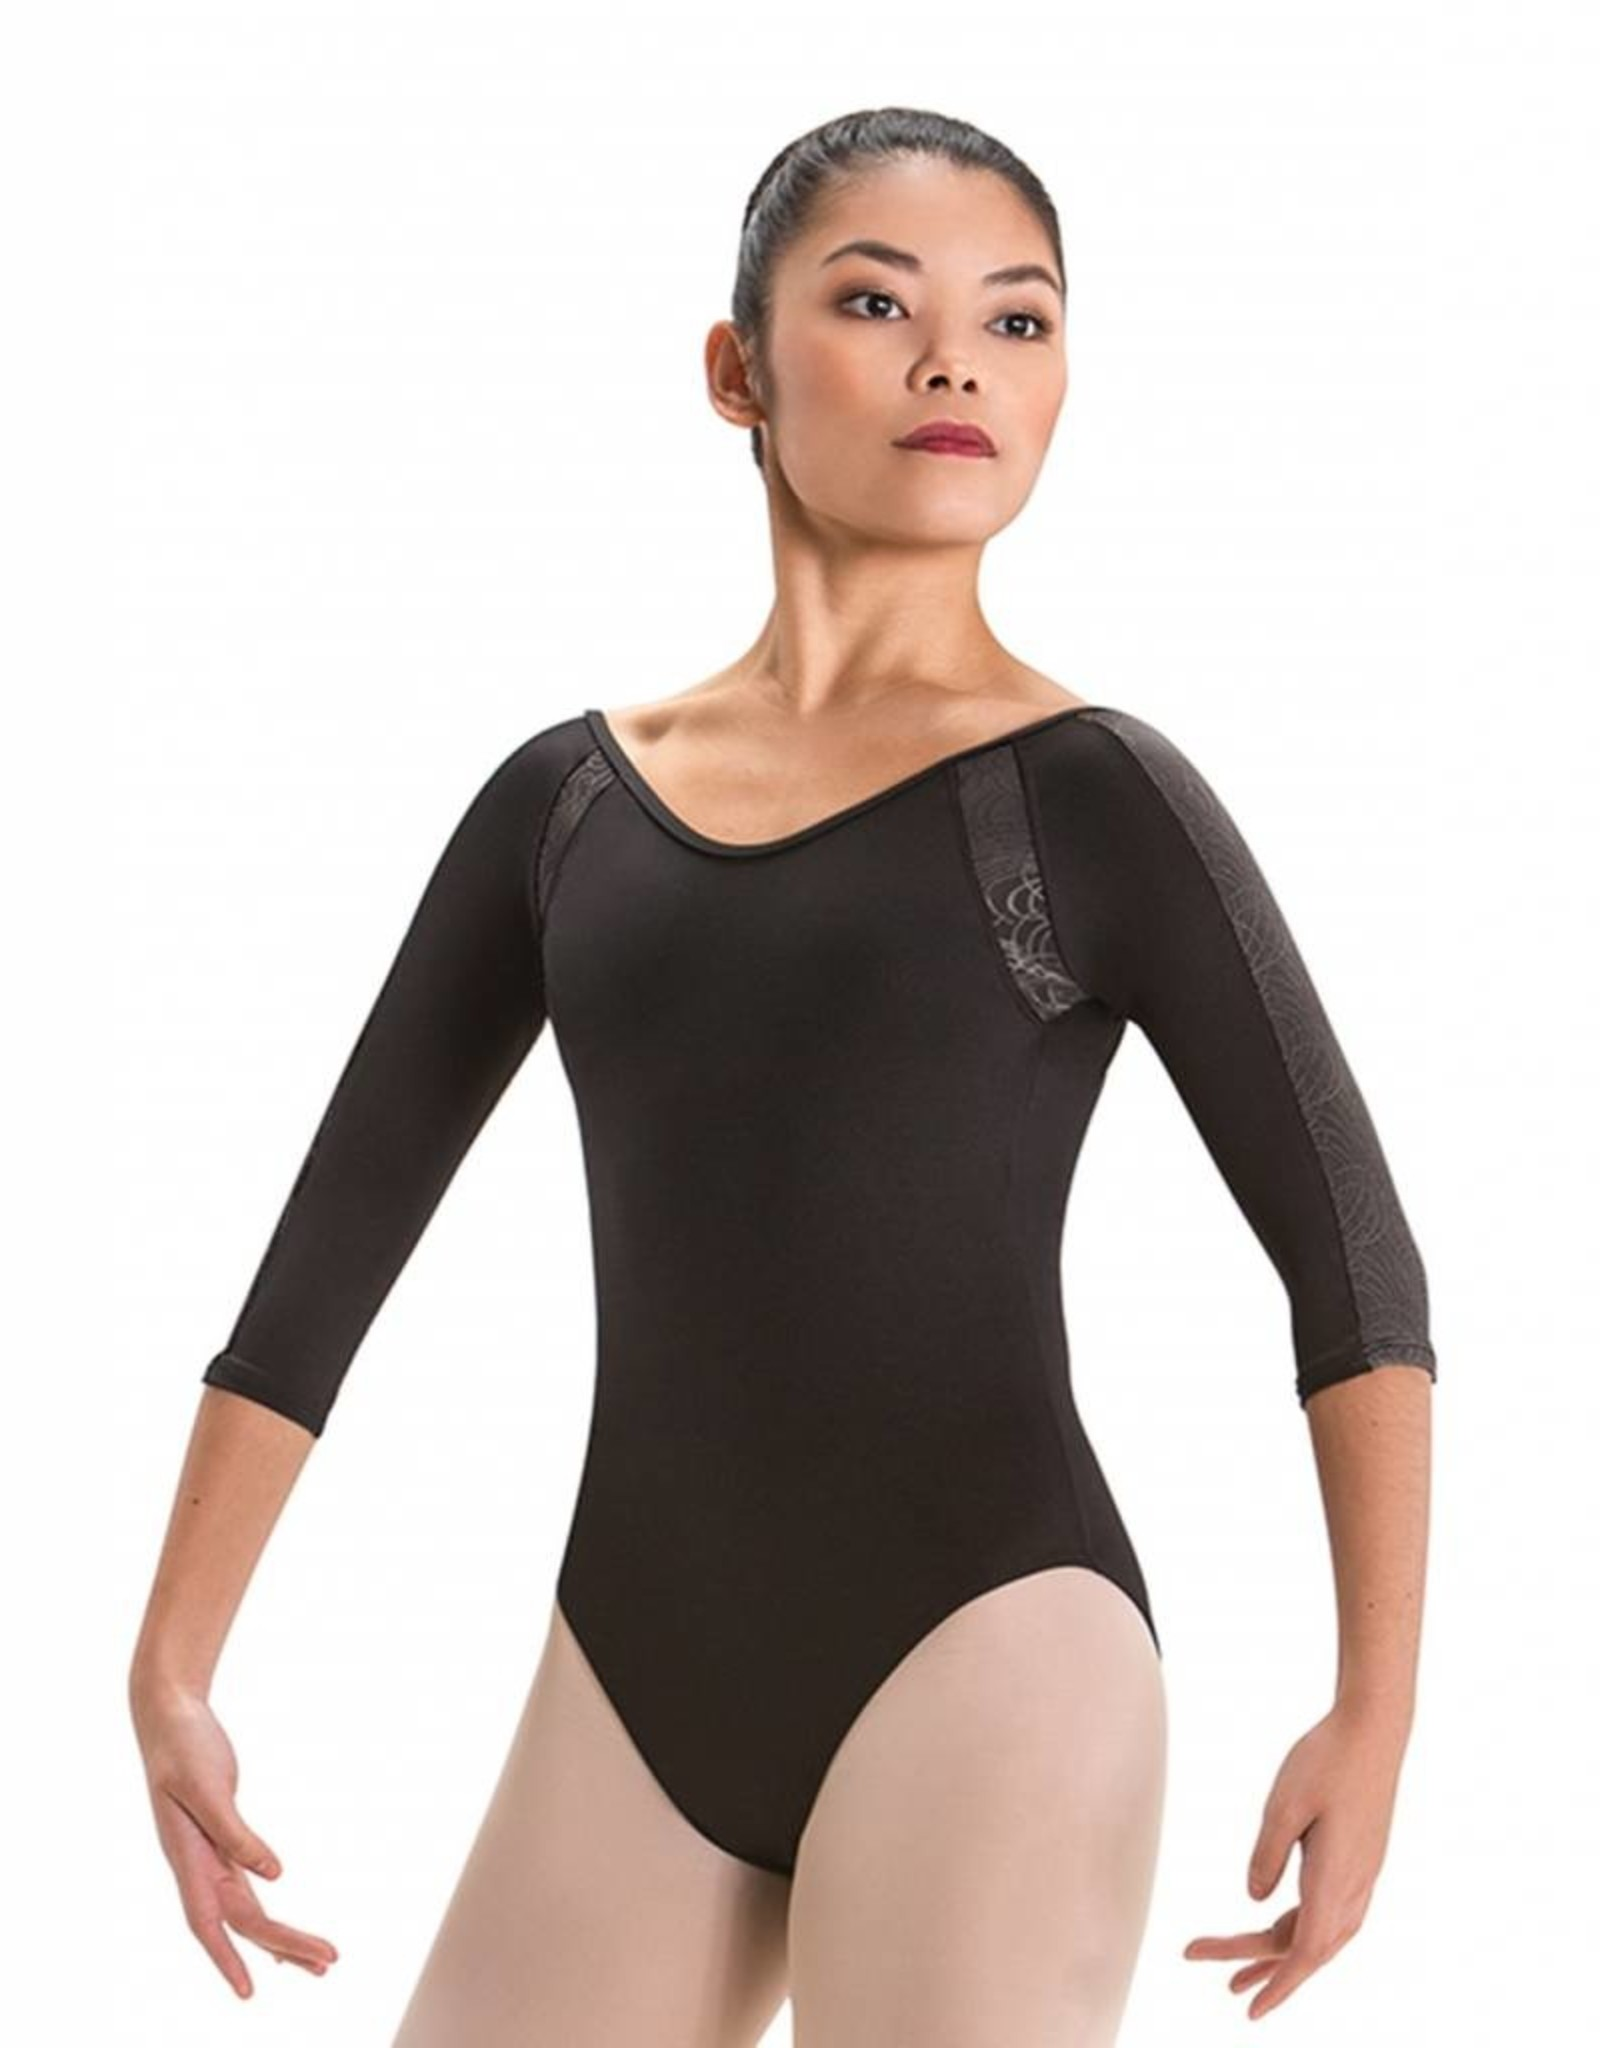 MOTIONWEAR OFF-SET MAILLOT MANCHES 3/4 (2952)